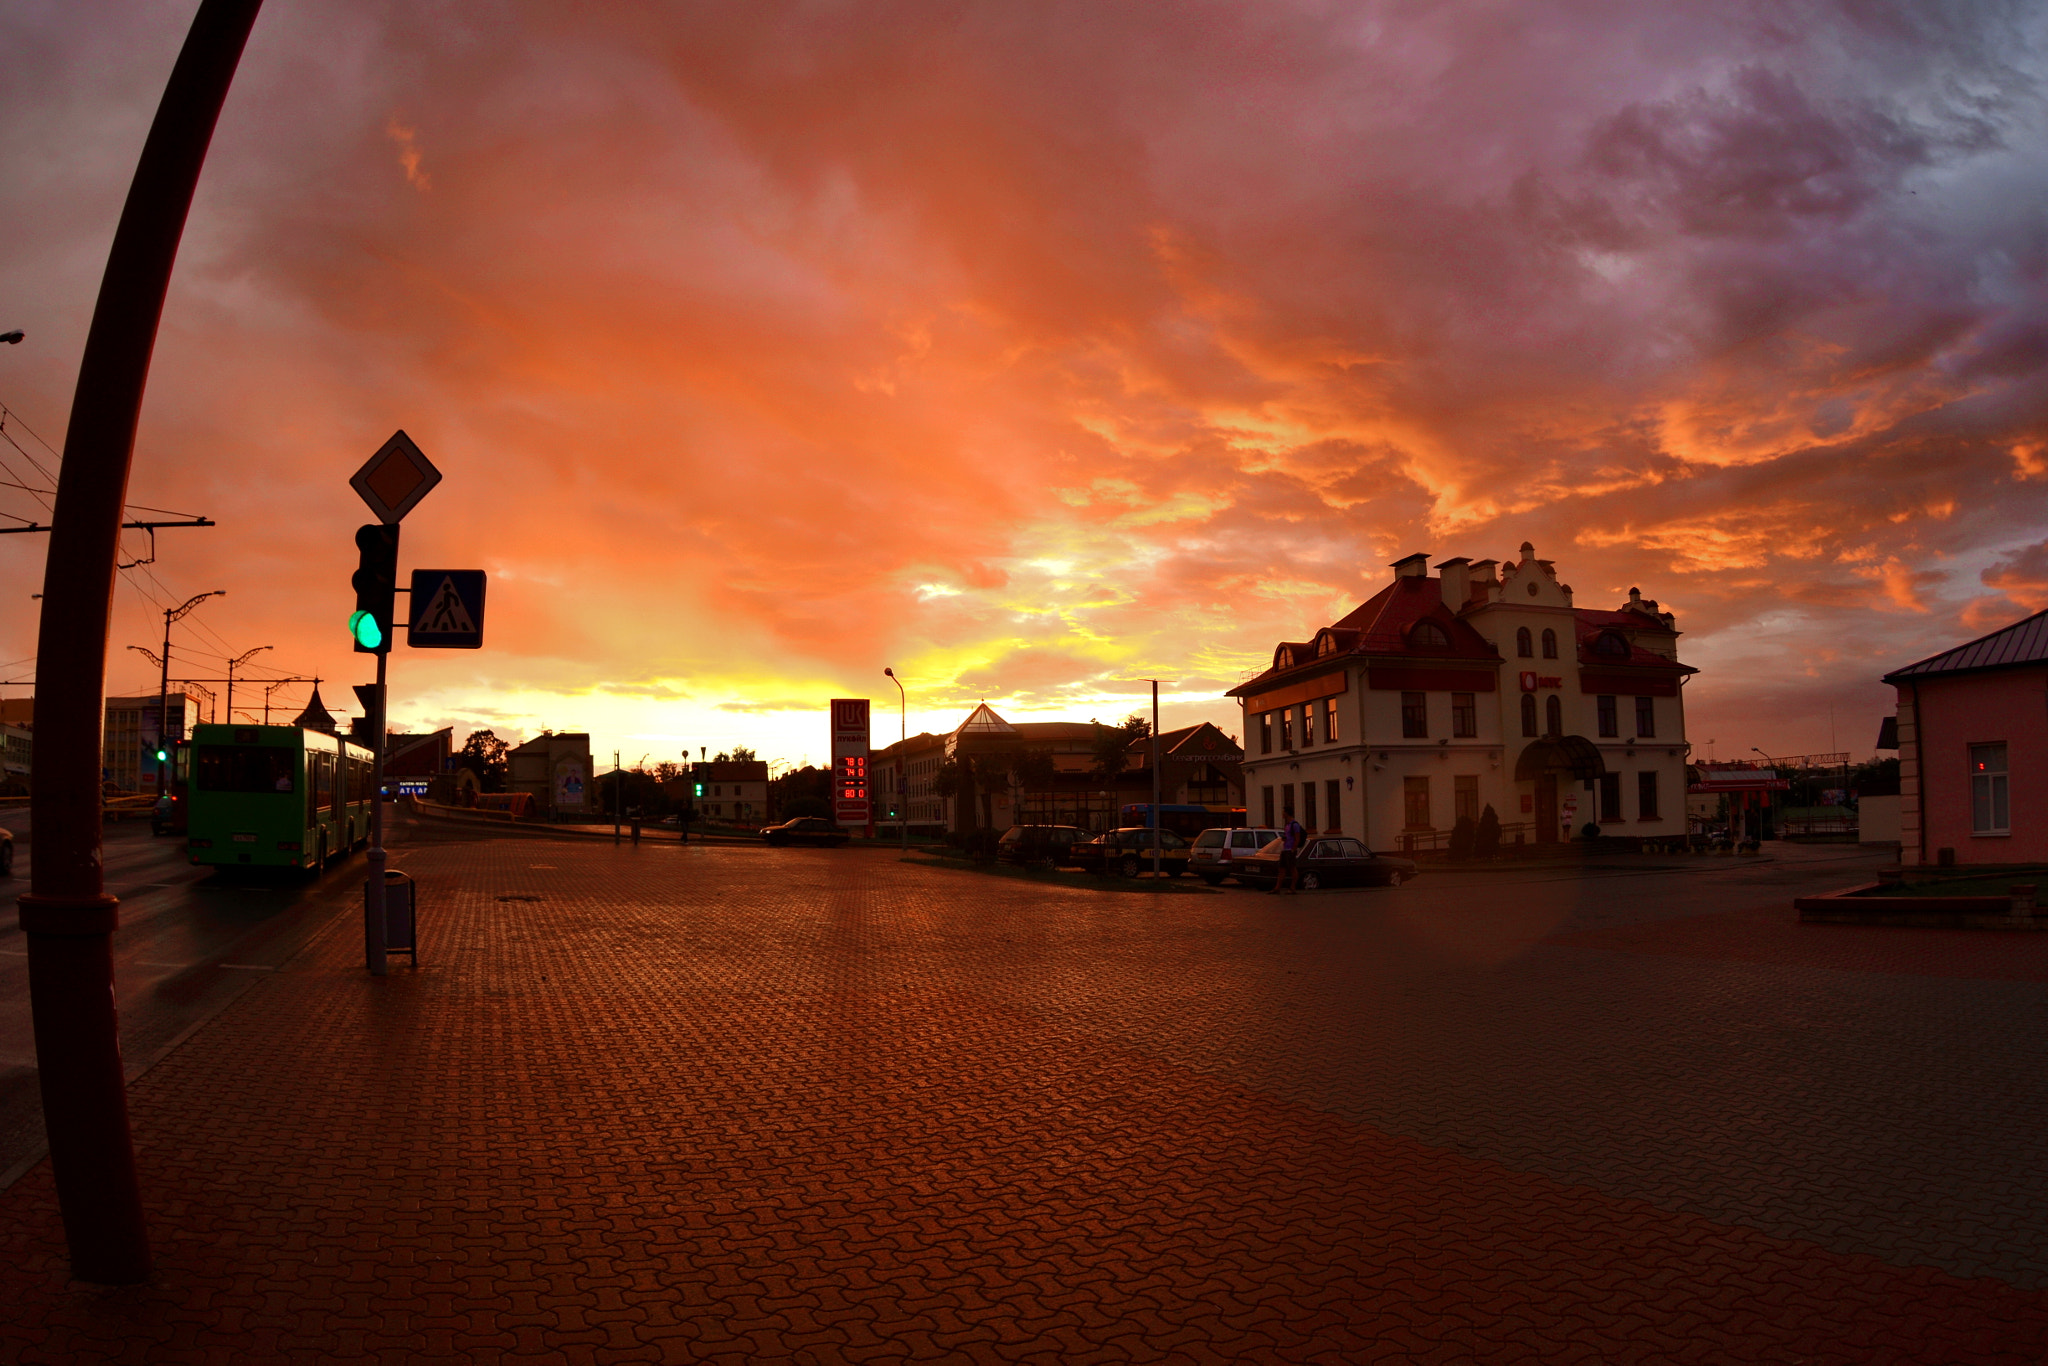 Photograph Evening Grodno by Alex Kologriff on 500px